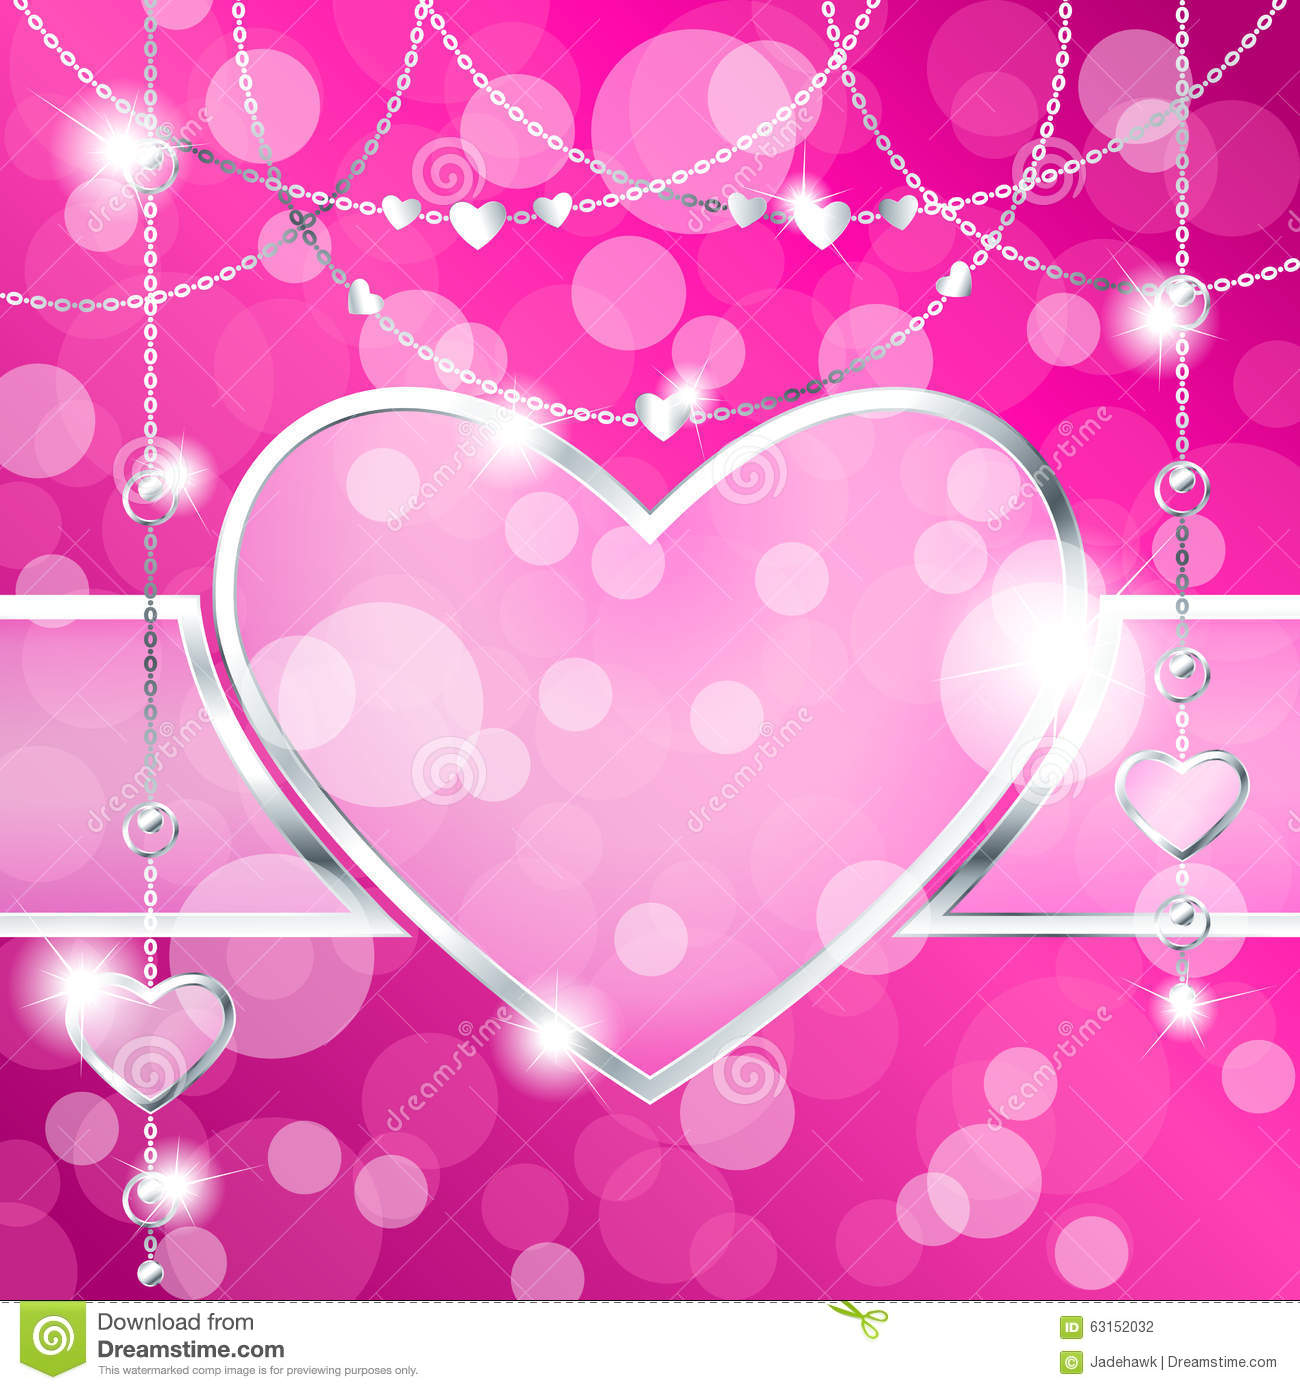 Heart Shaped Frame On Sparkly Hot Pink Background Stock Vector